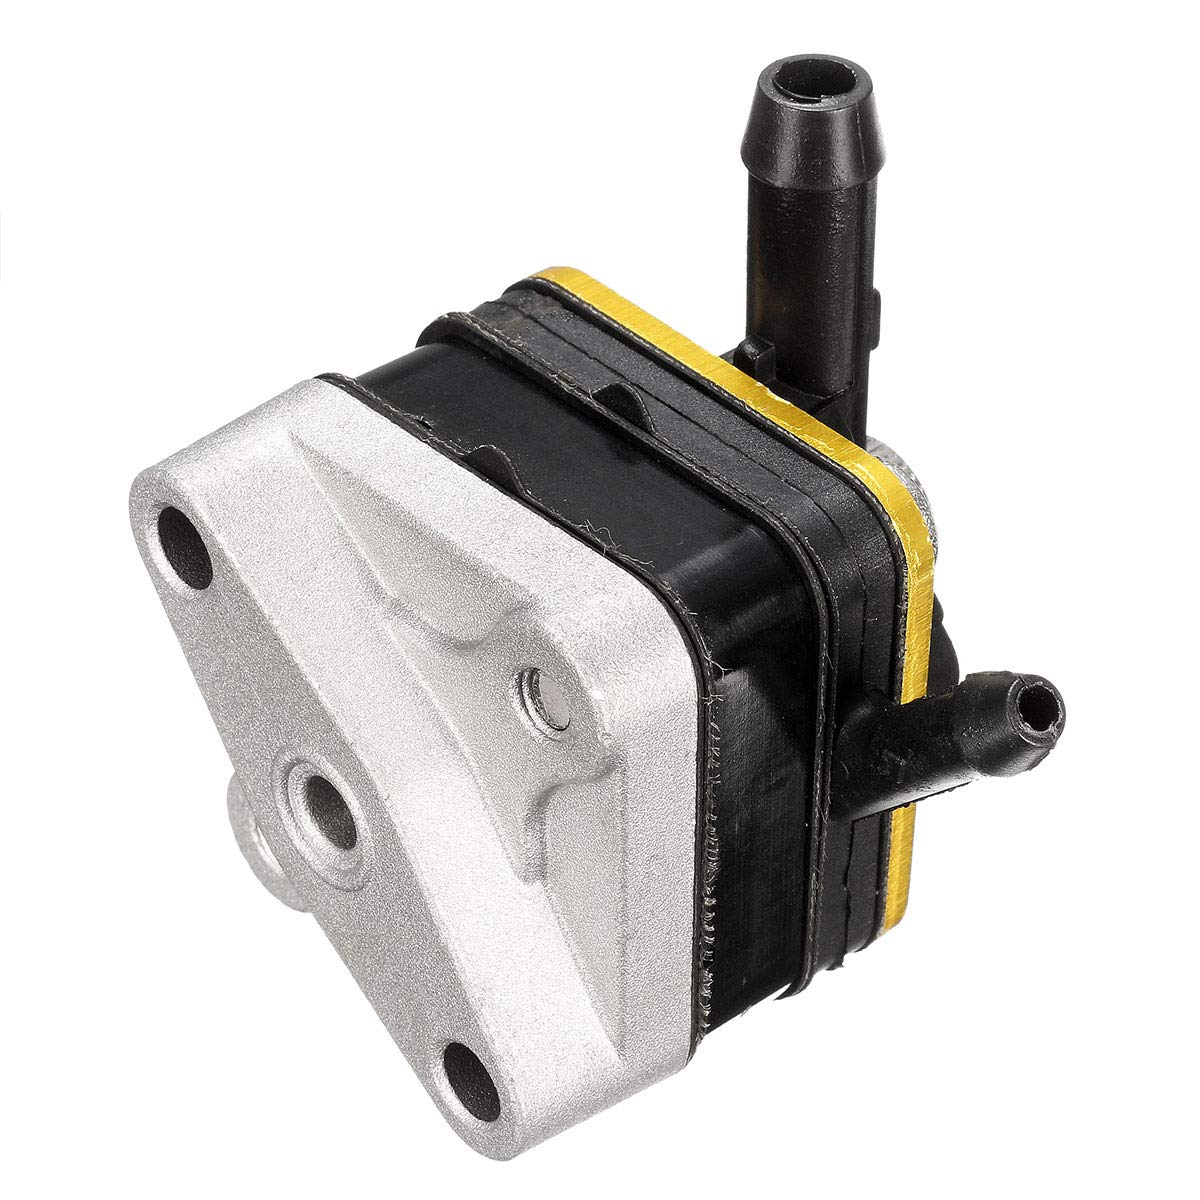 Forspero Fuel Pump Assembly For Johnson Evinrude 6 Hp 9.9Hp 15Hp Pre 1993 397839 Motor